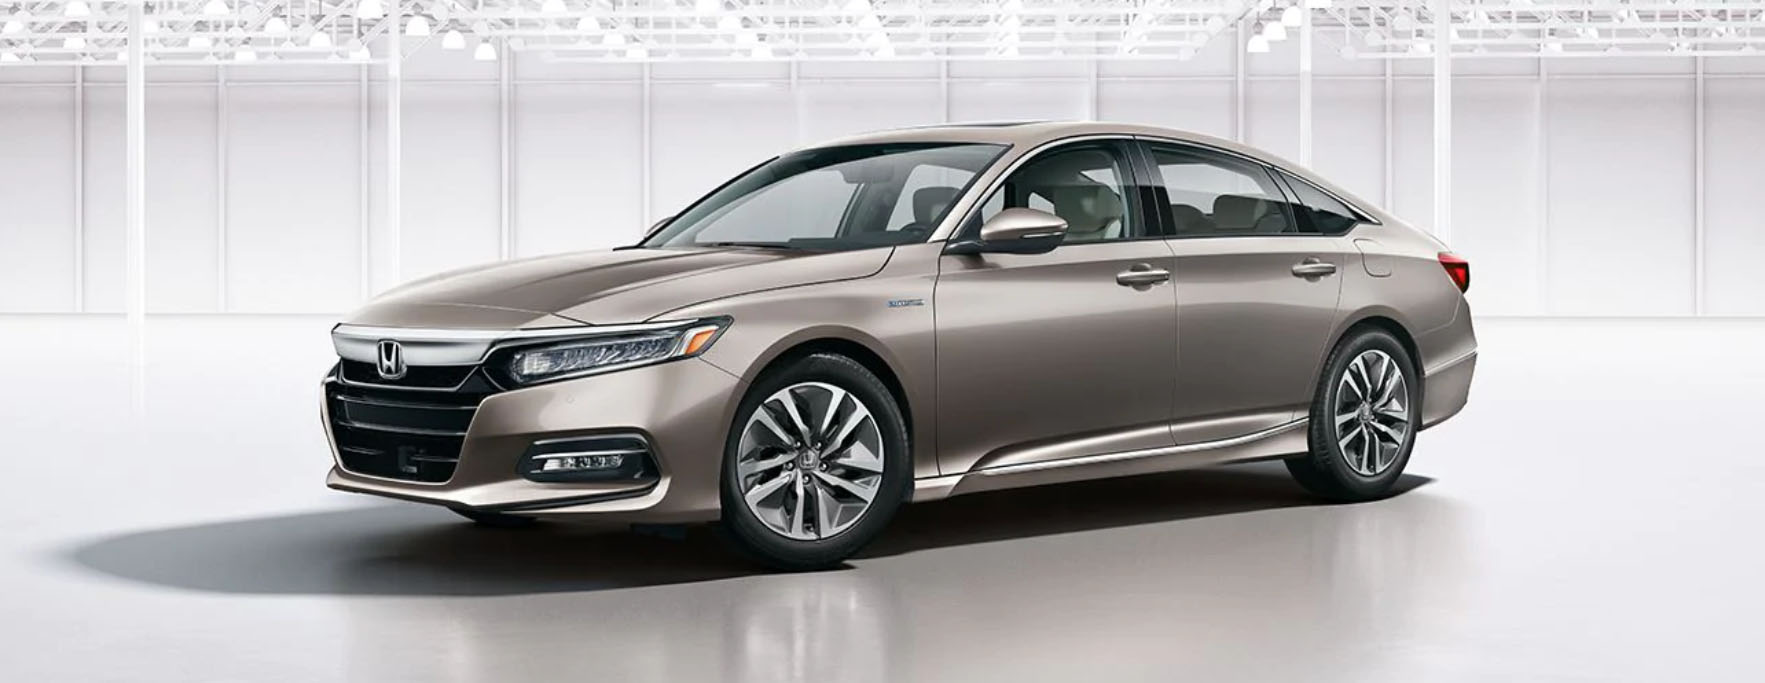 2020 Honda Accord Hybrid For Sale in Sarasota